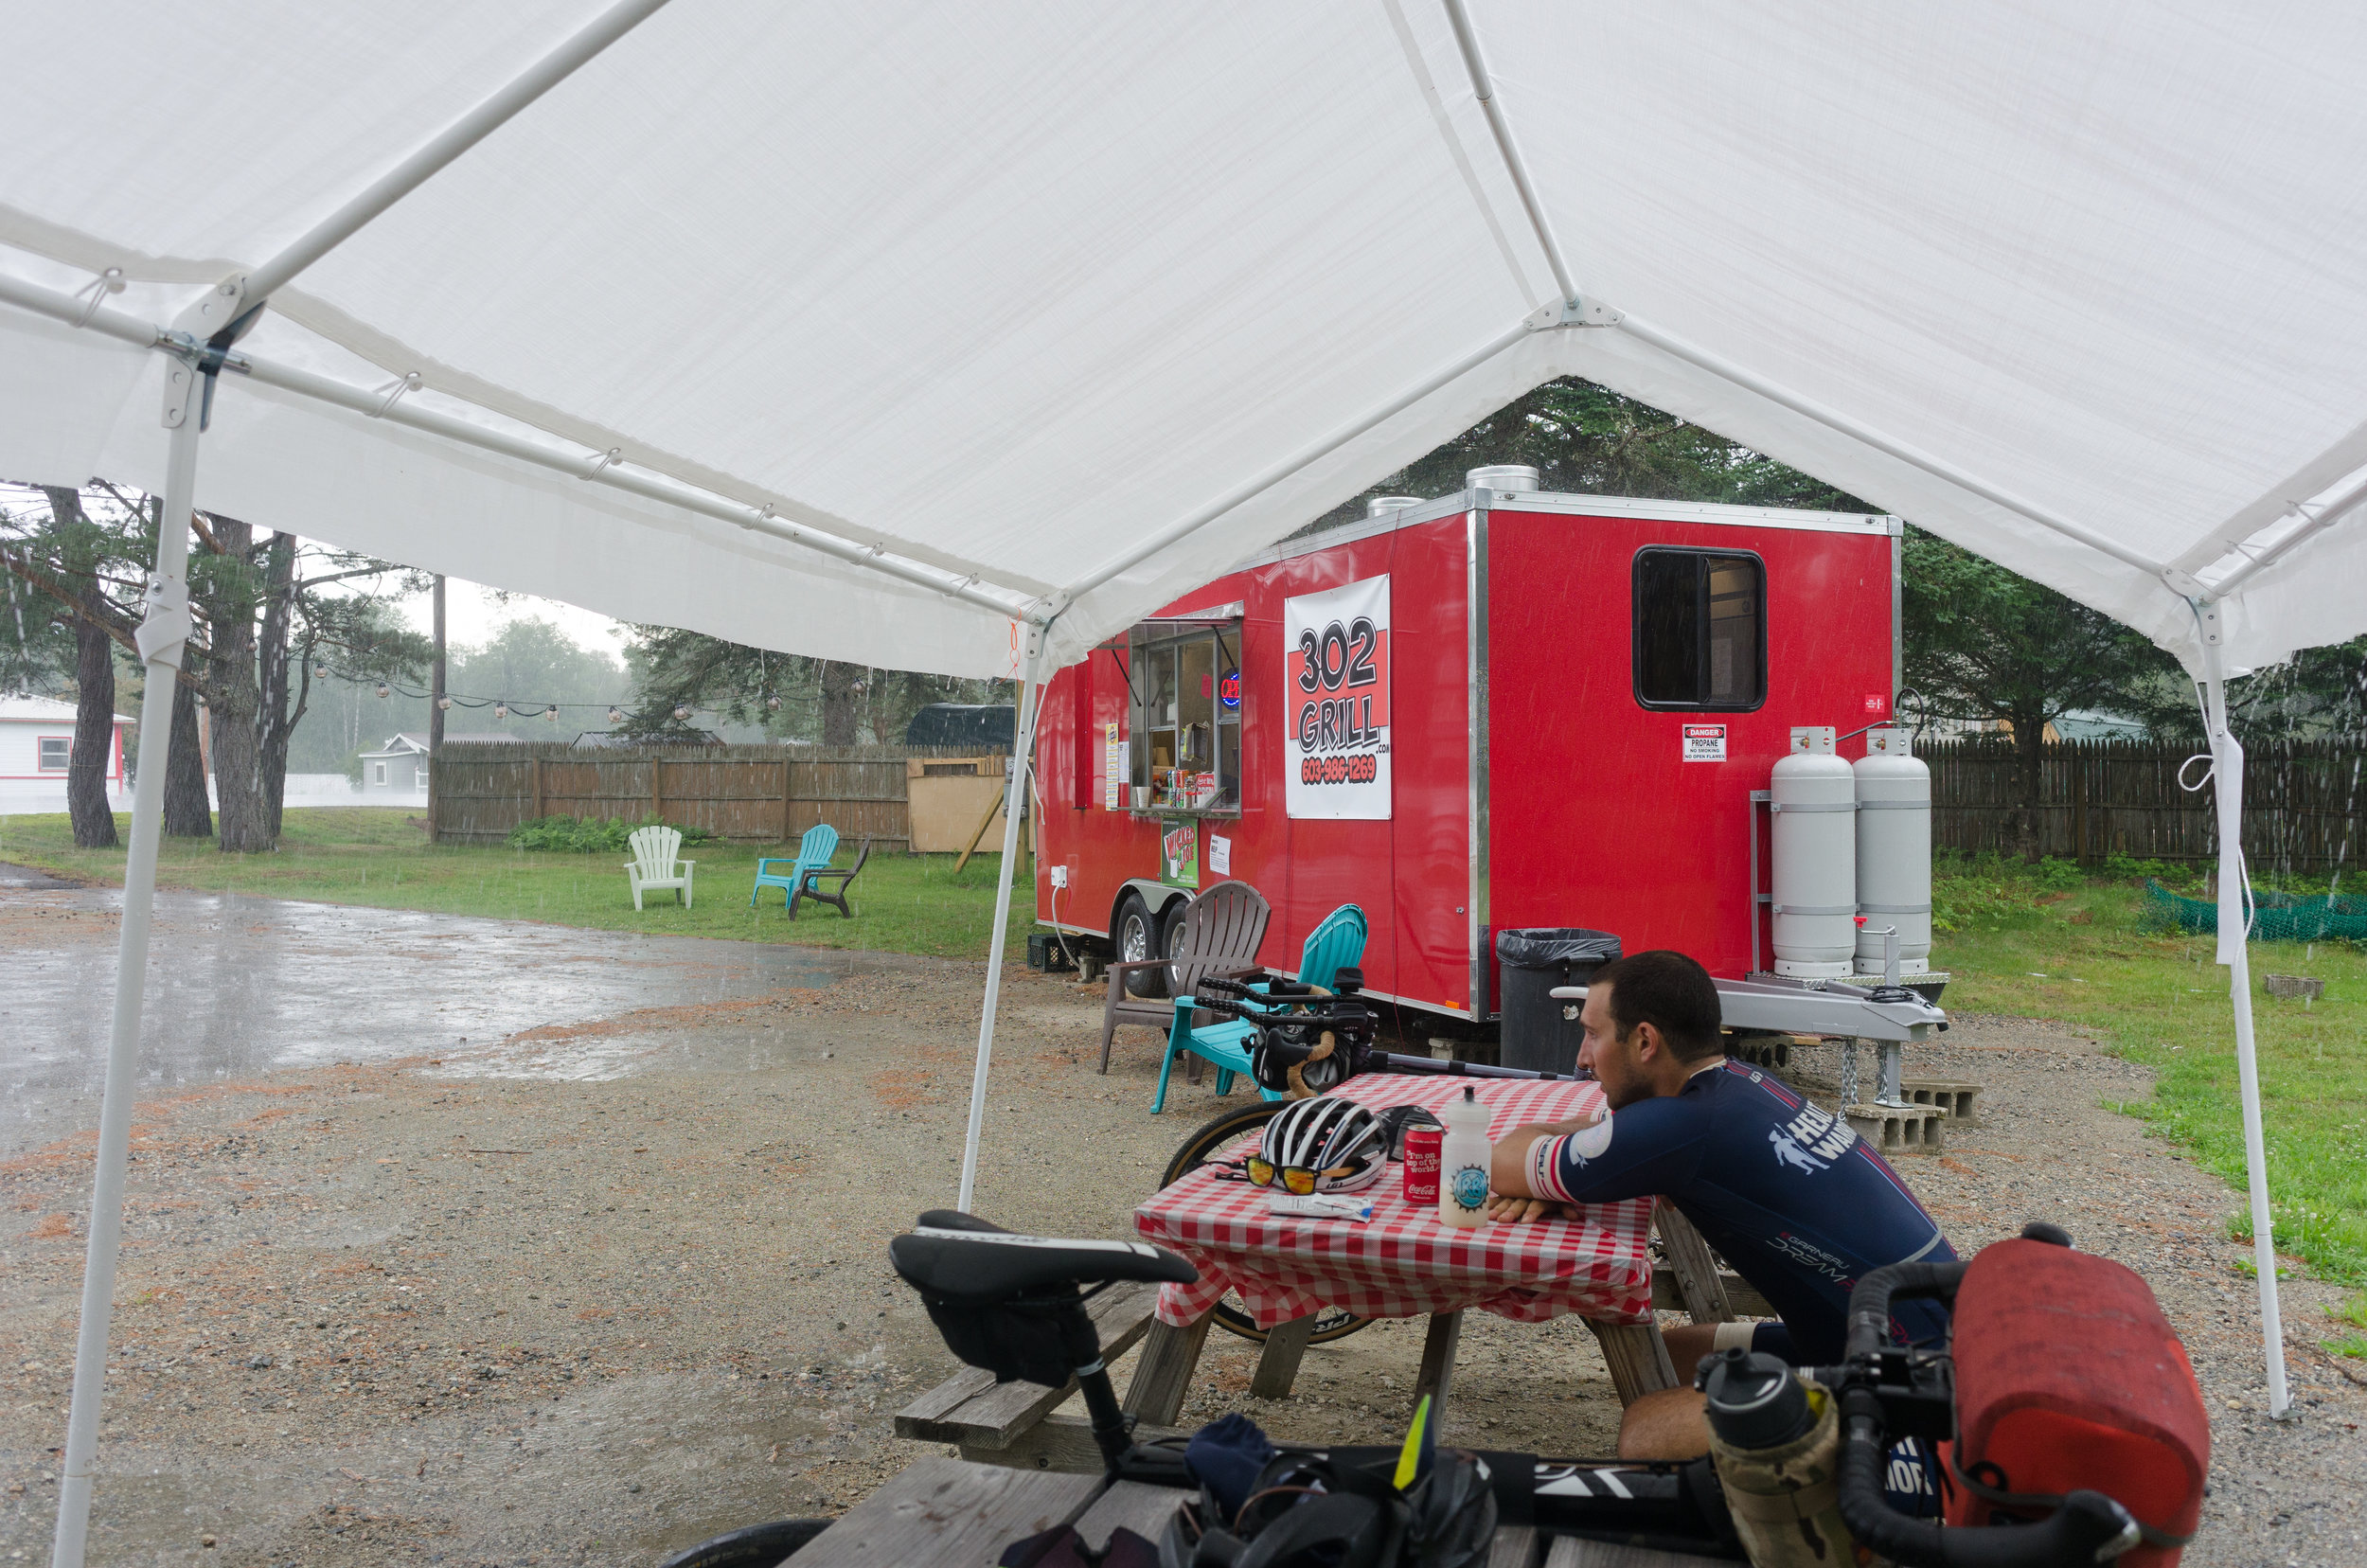 After a 97-mile day in the saddle with 5,000+ feet of climbing the rain that seemed to follow us our entire ride was nice enough to hold off until we pulled off into our motel for the evening.